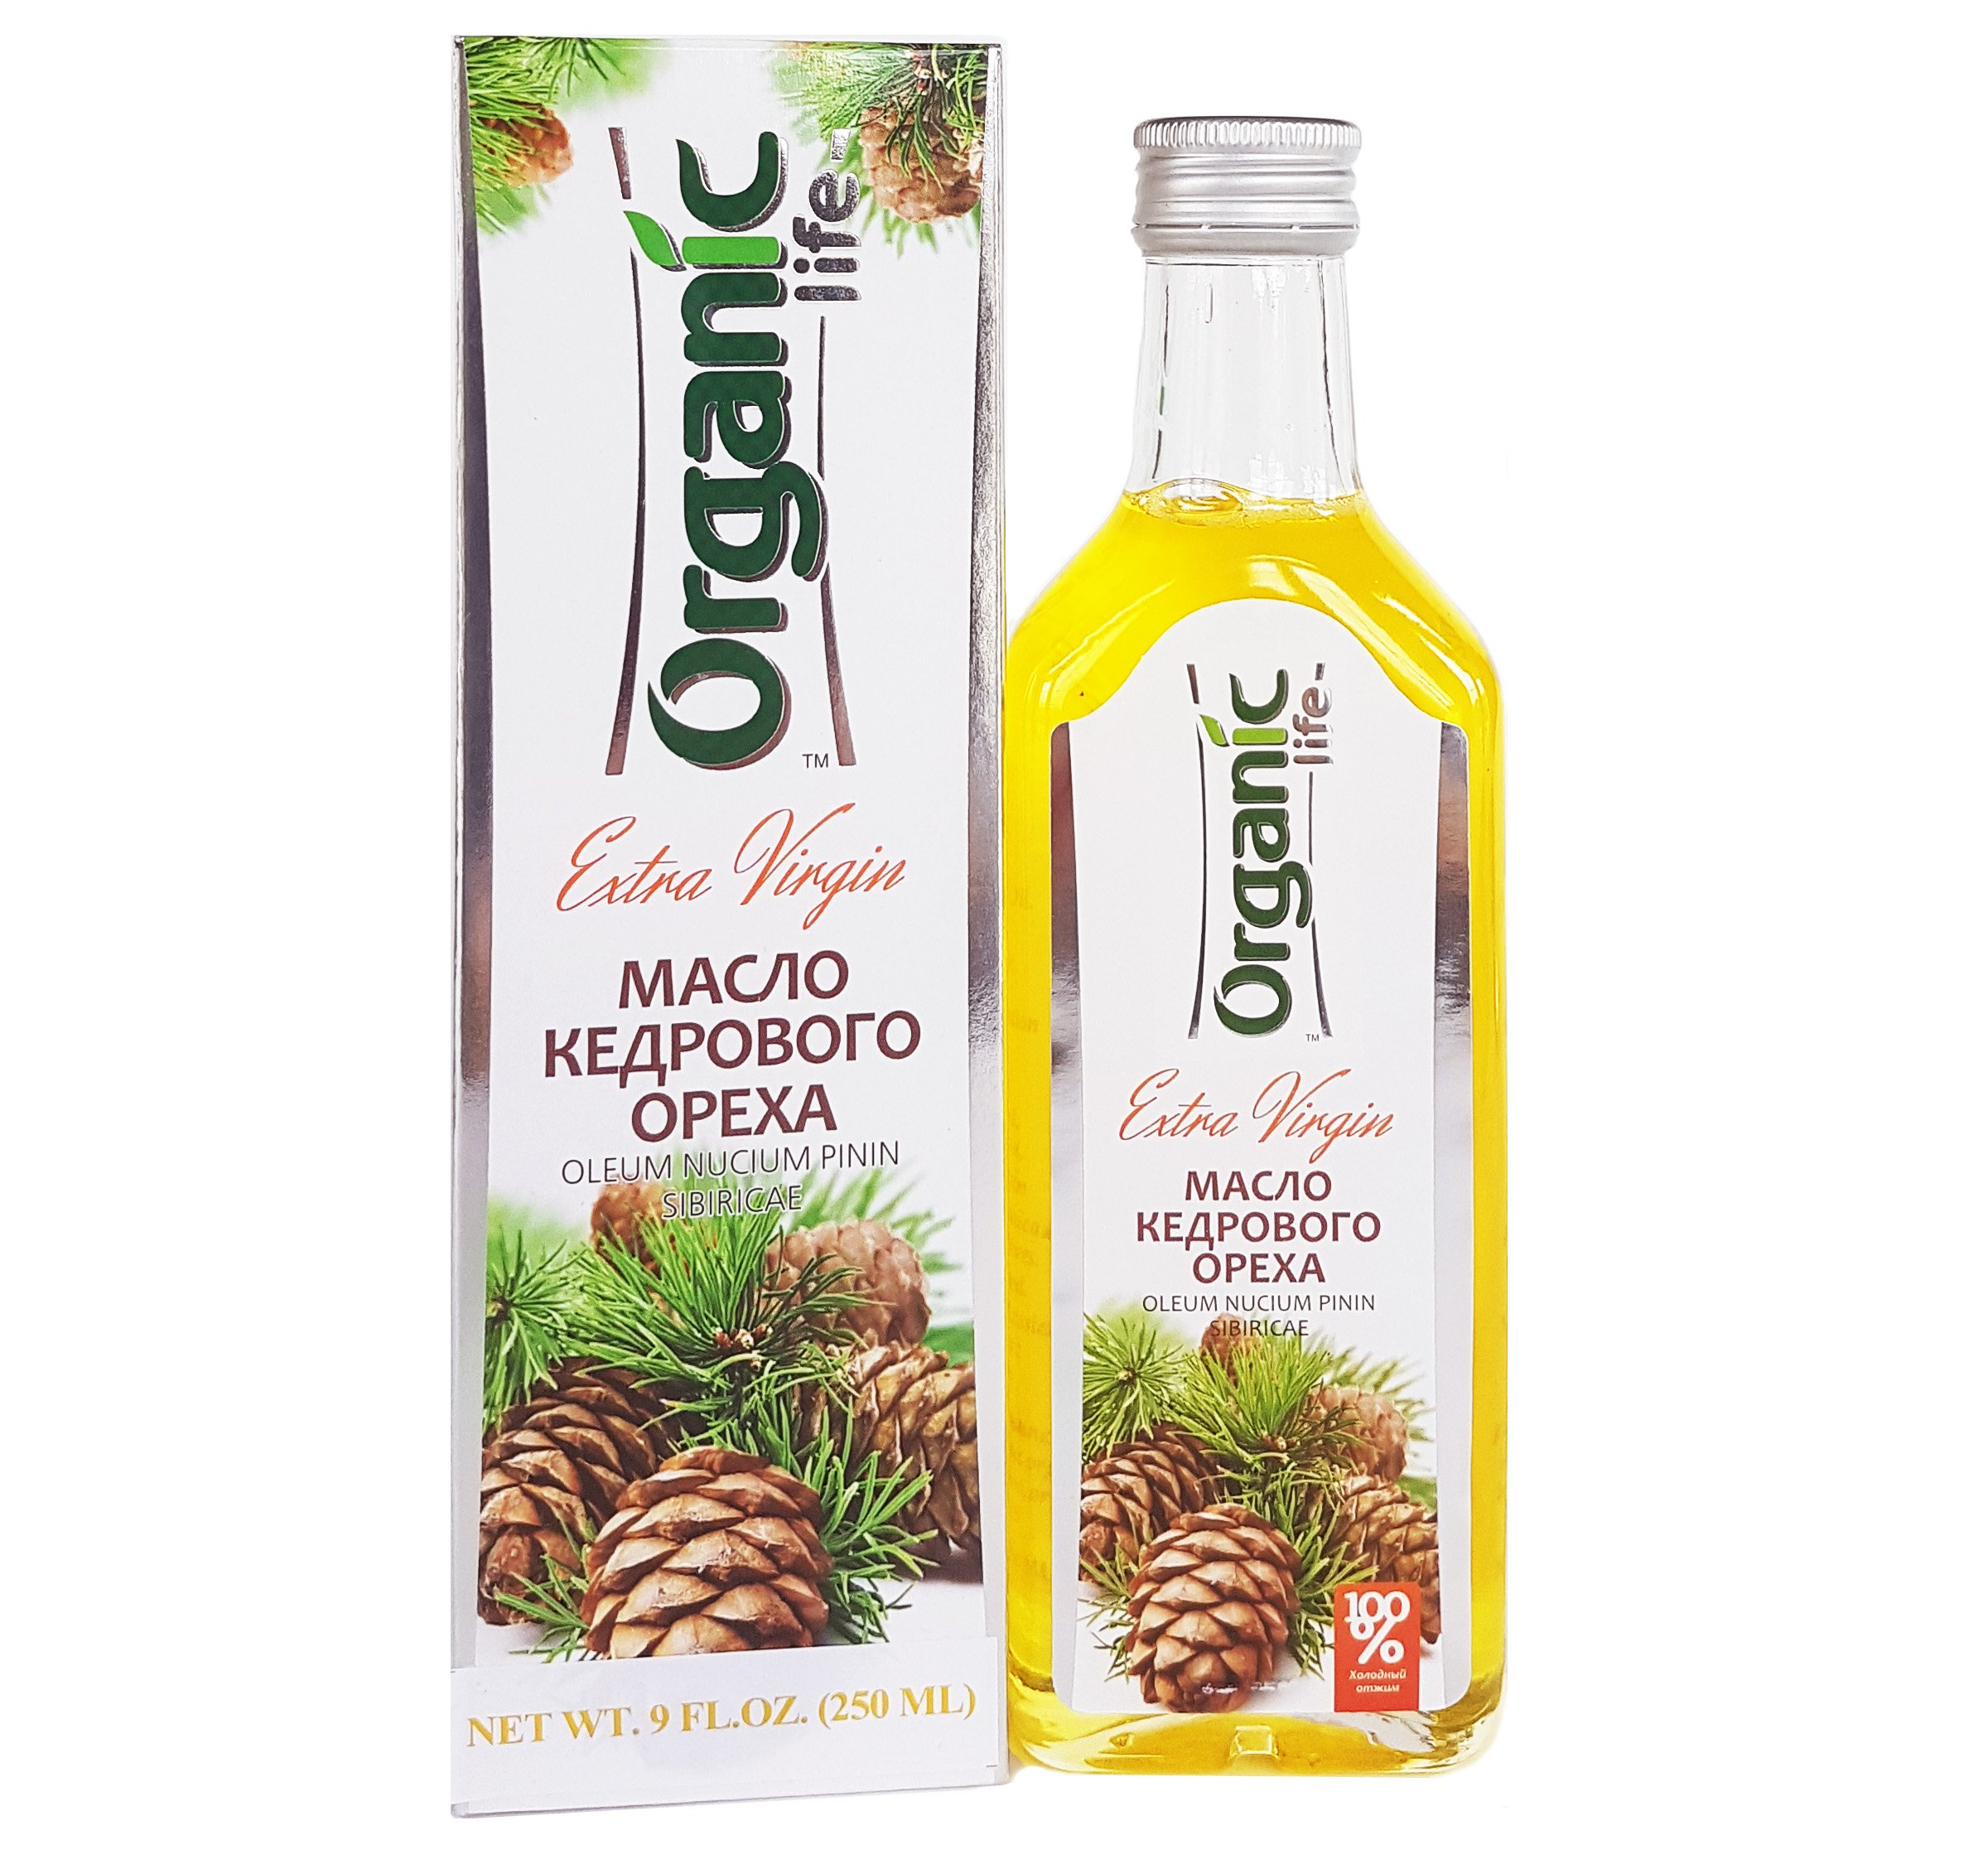 JUST ARRIVED!!! ORGANIC PINE NUT OIL - 9 oz/250ml. First Grade, Authentic and 100% Natural, Extra Virgin, Unfiltered, First Press Only, Cold-pressed. Pressed from Wild Harvested, Raw Pine Nuts.